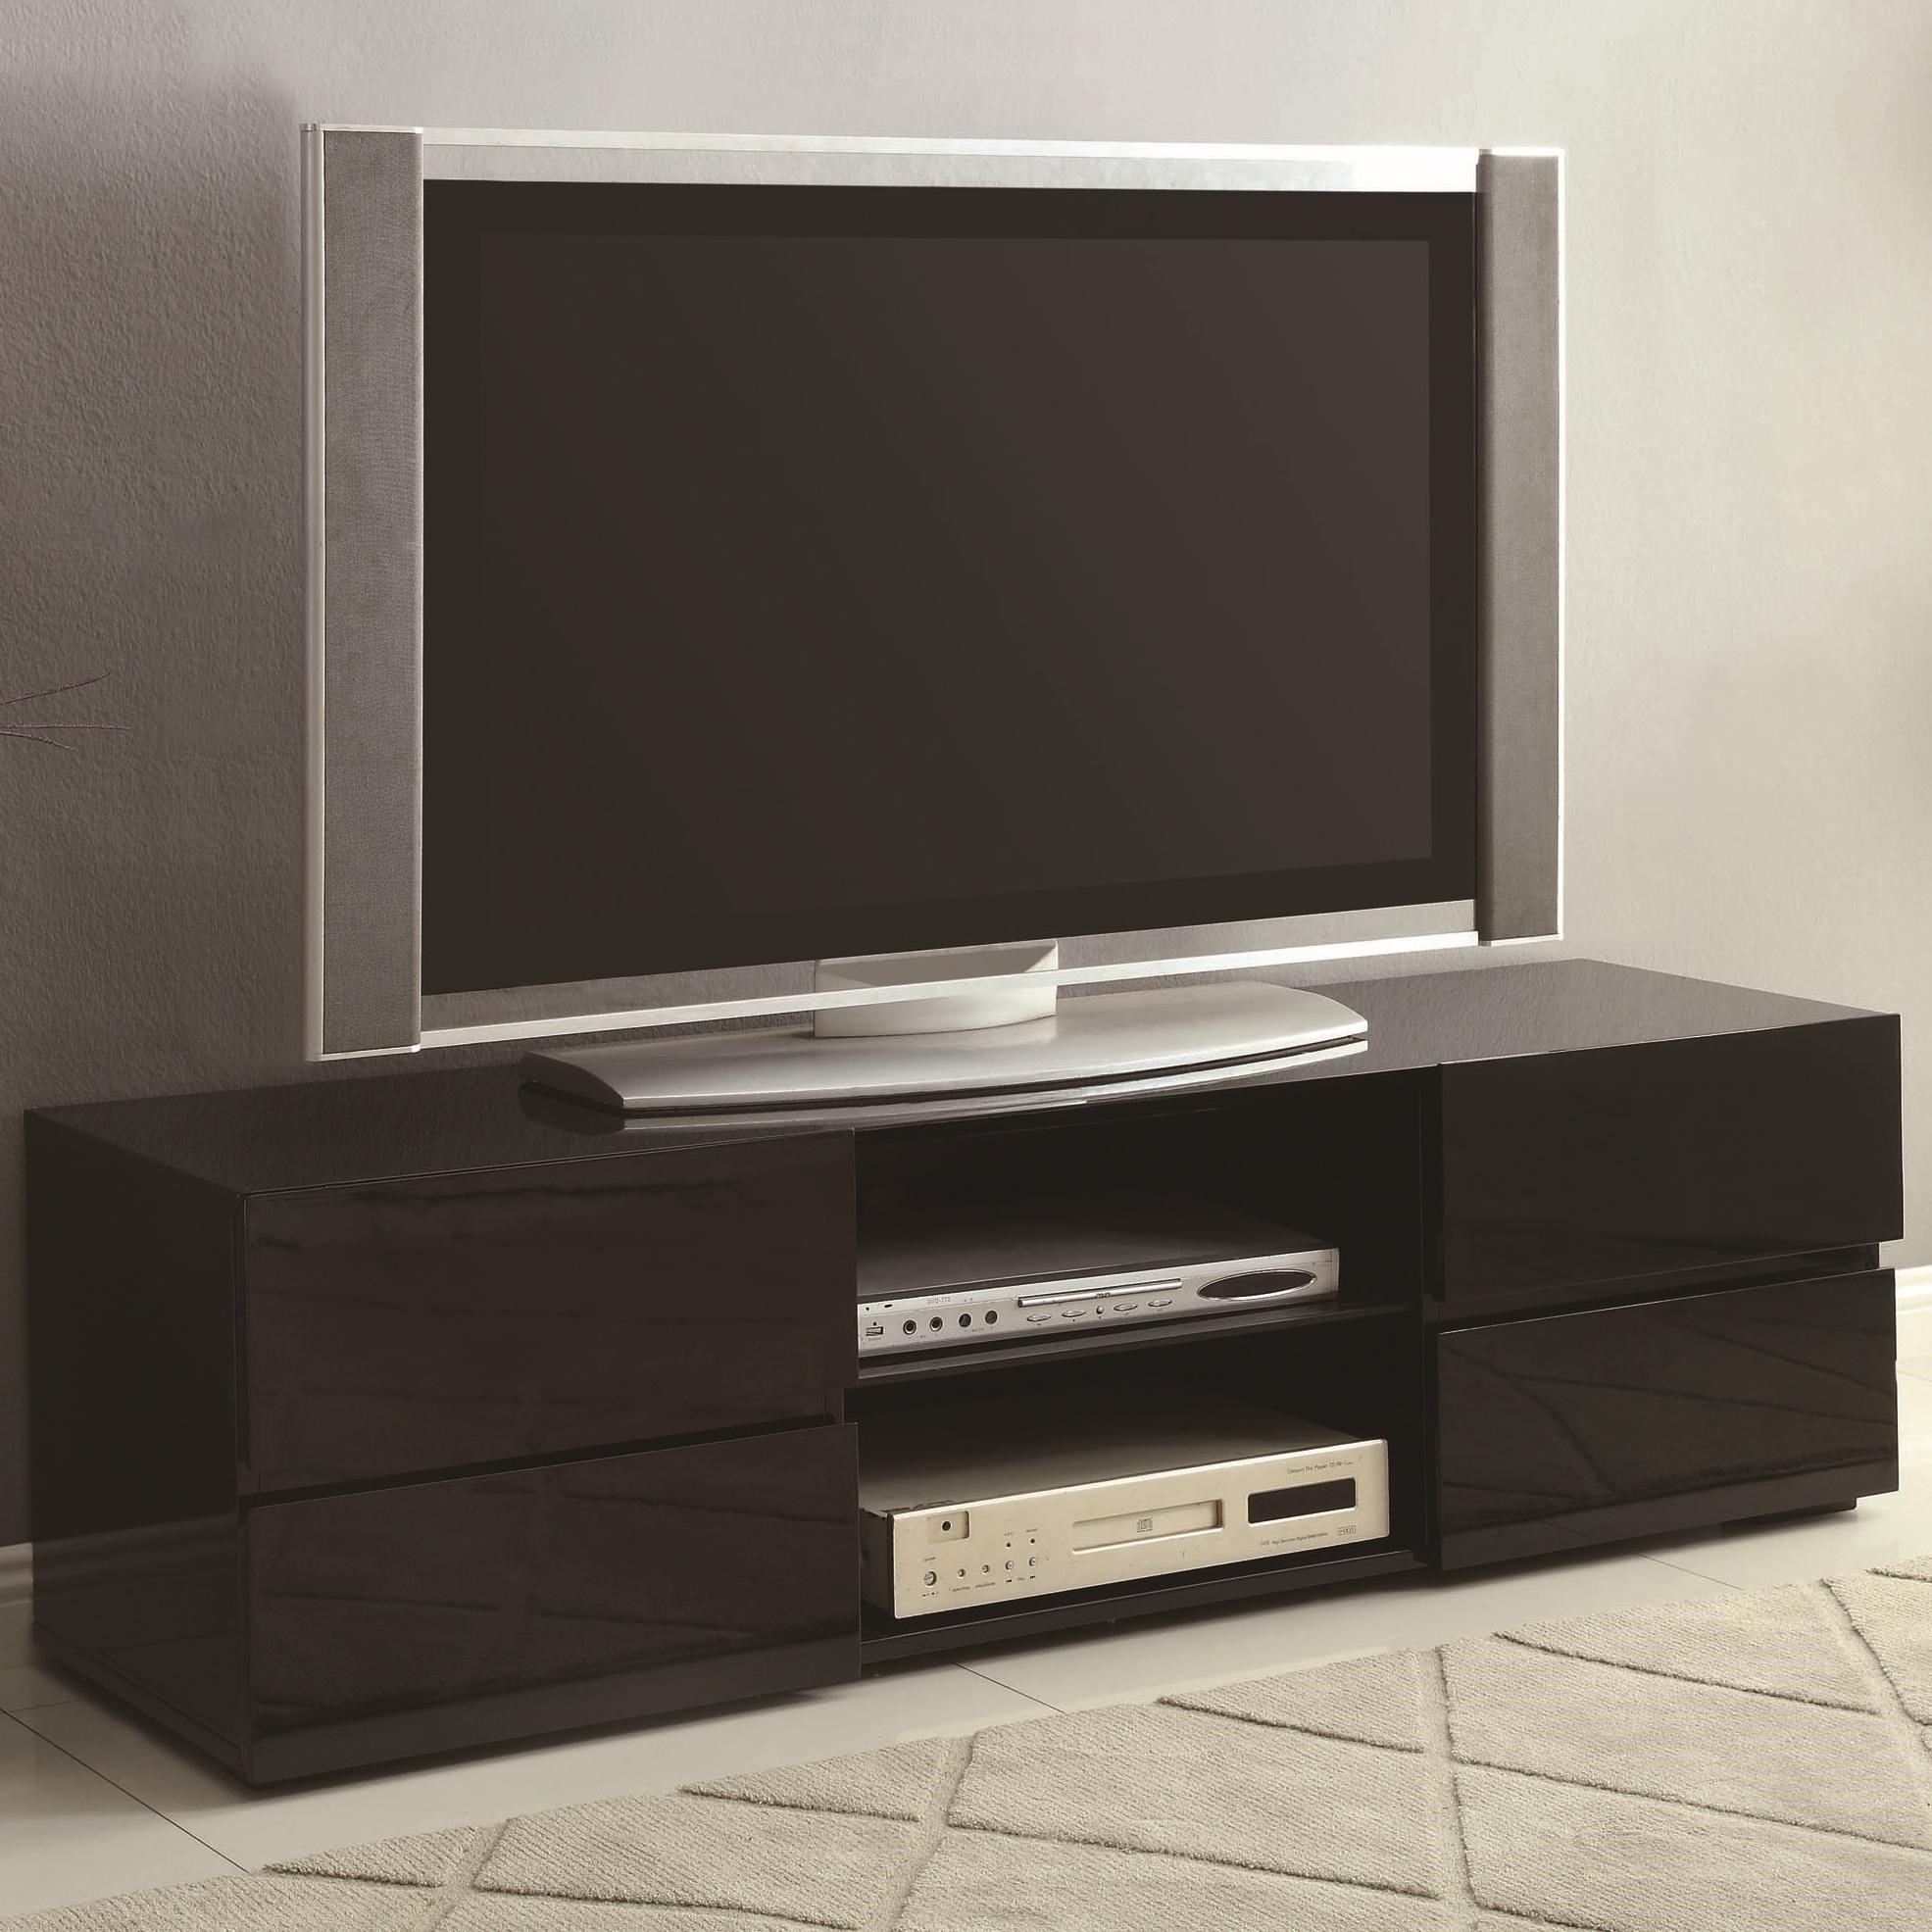 Coaster TV Stands High Gloss Black TV Stand with Glass